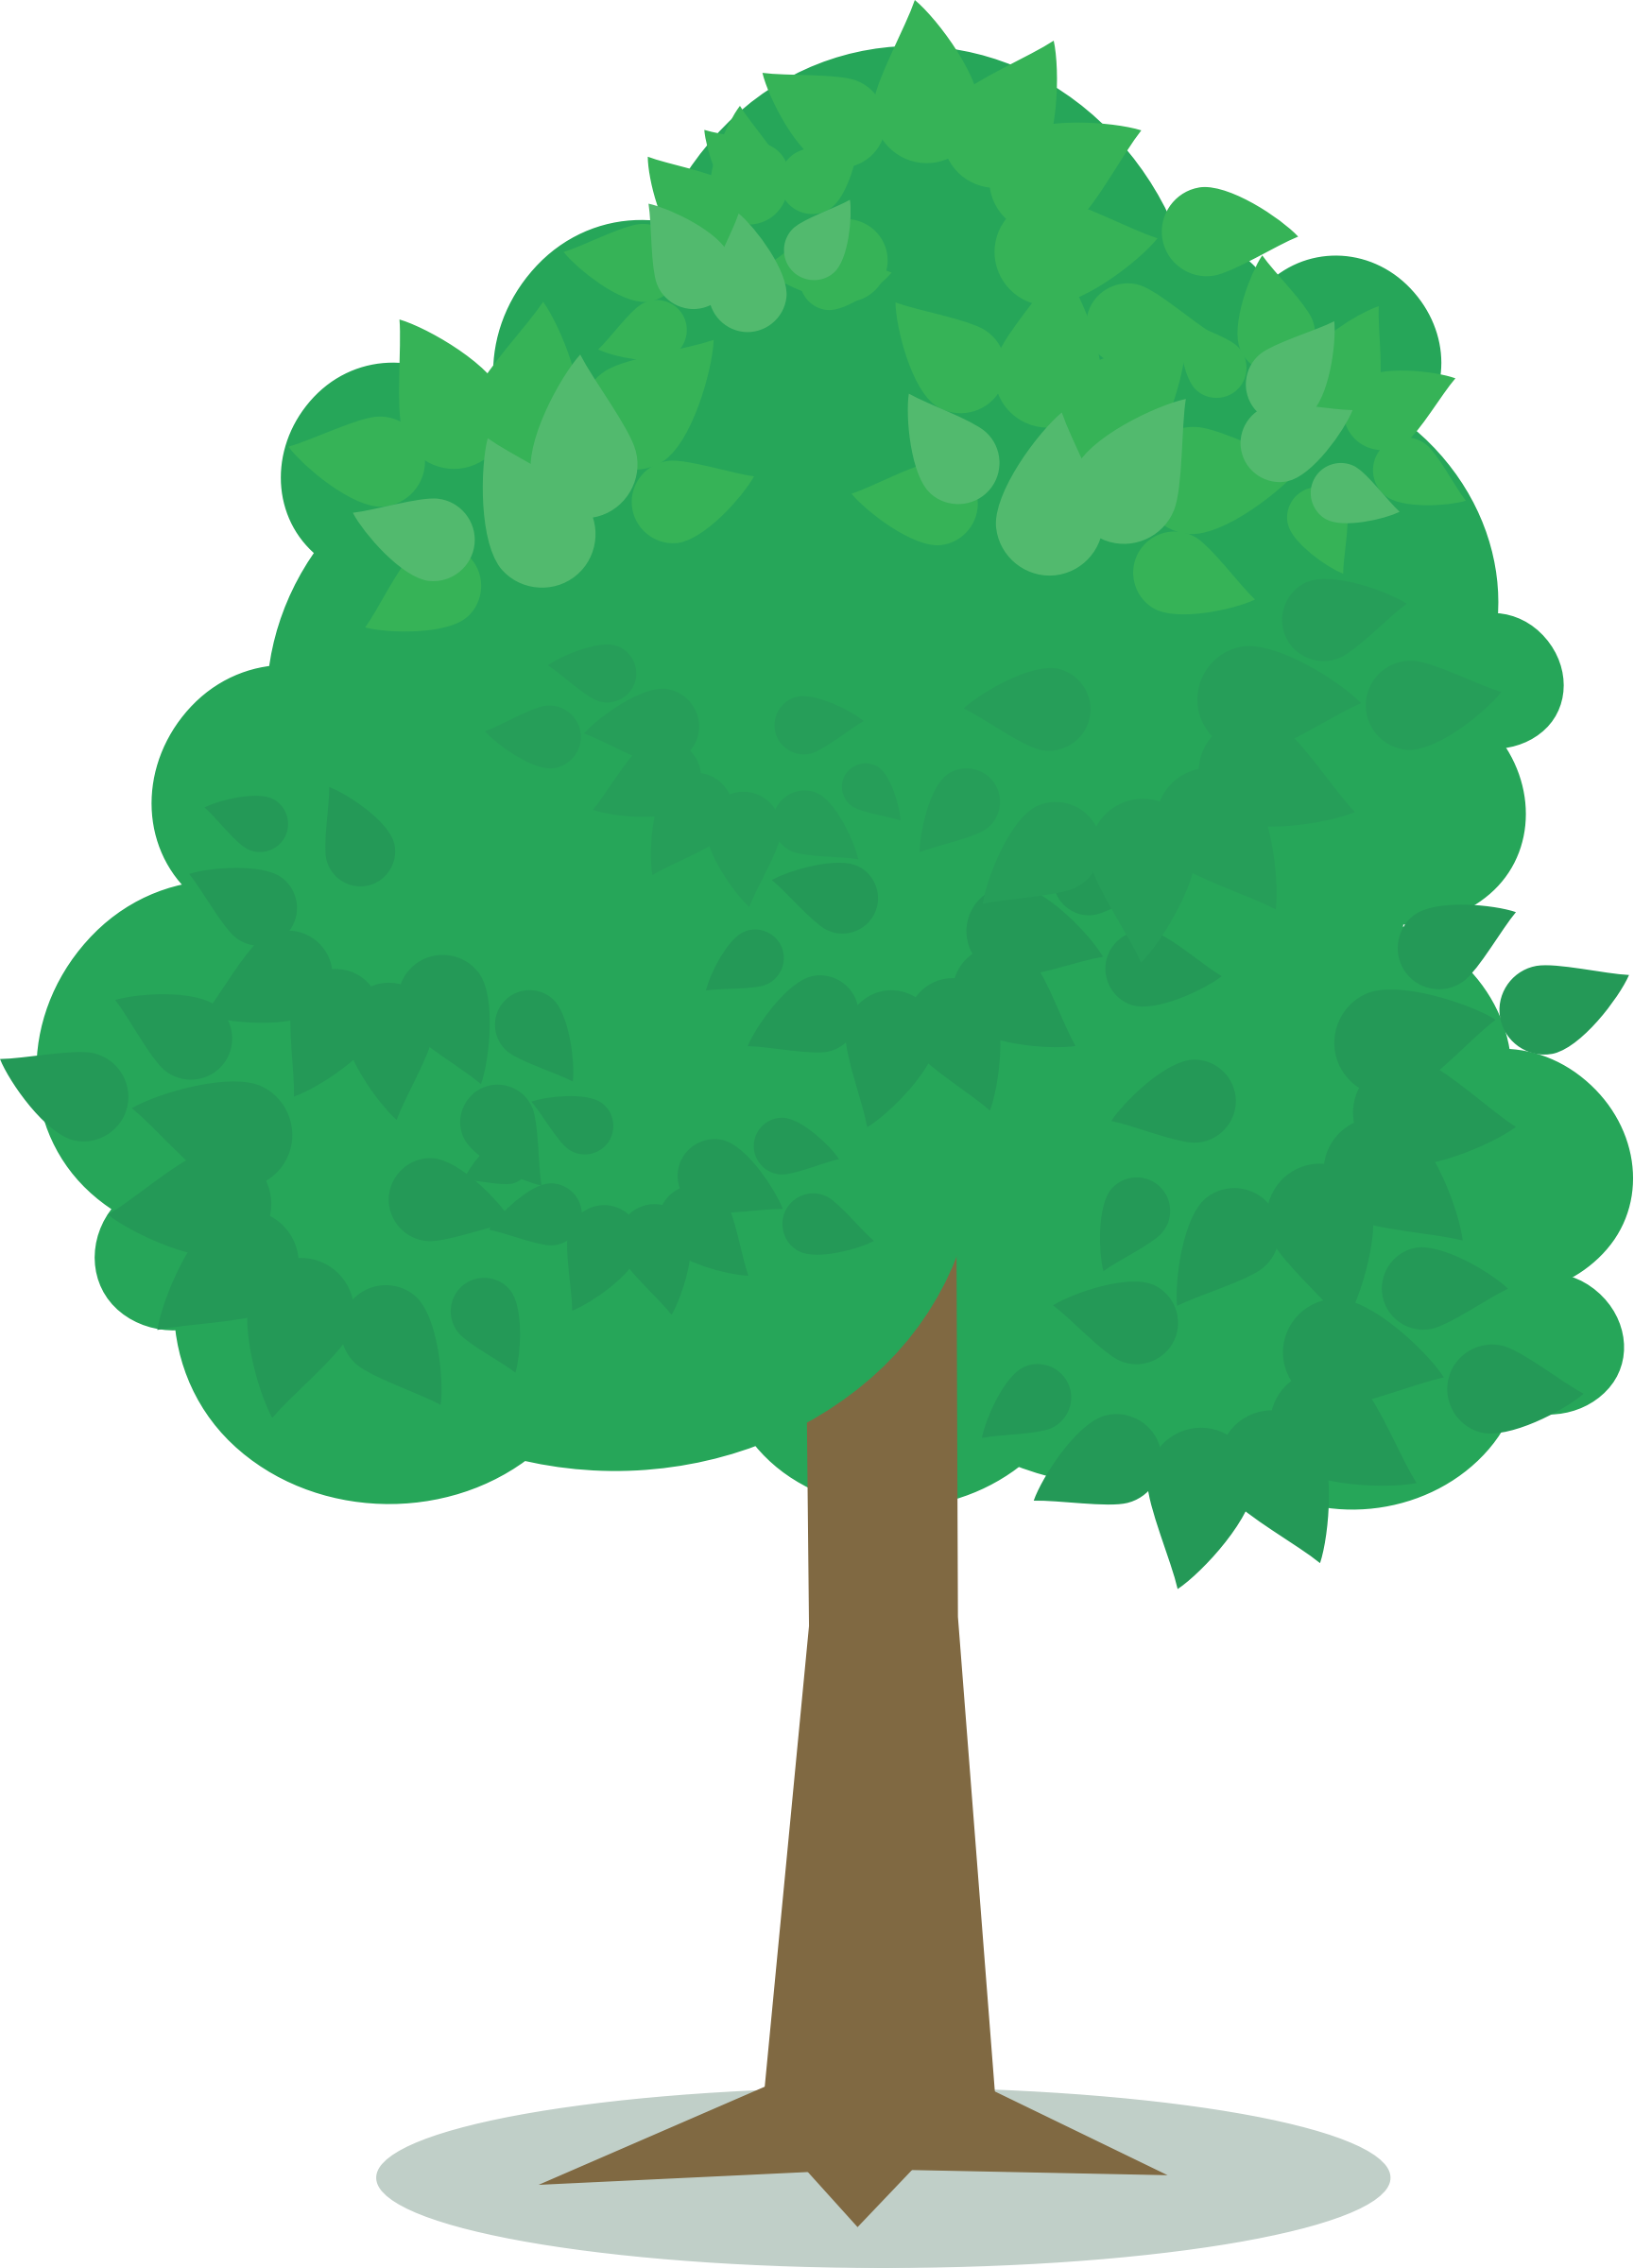 Sad tree clipart jpg freeuse download Clipart - Tree 5 jpg freeuse download